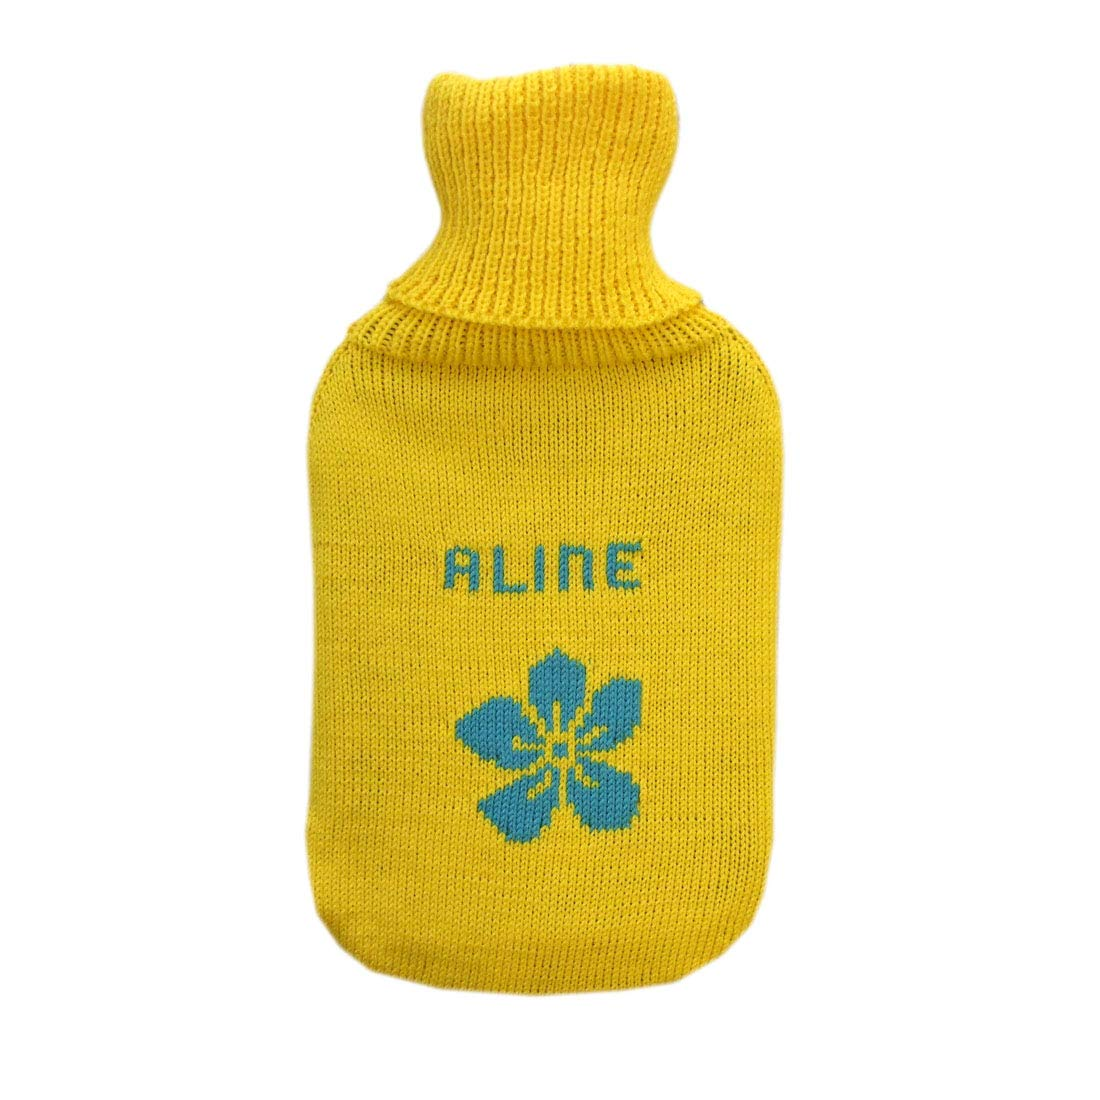 Personalized Hot Water Bottle 100% Merino Wool Knitted Rubber Hotty (Yellow-Aqua Blue with Flower) by tevirP